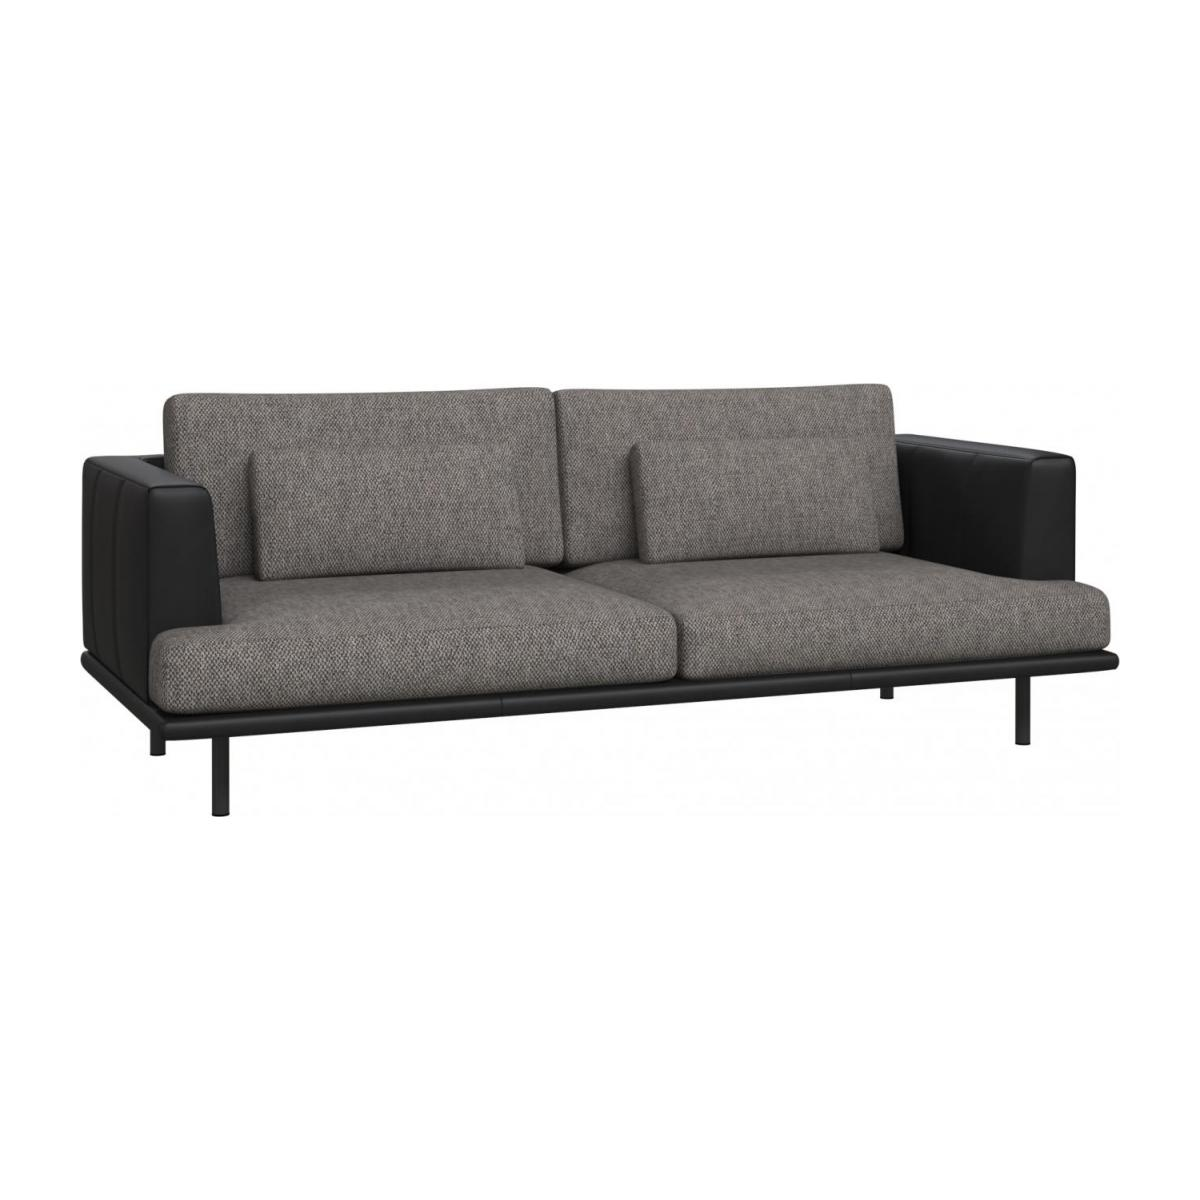 3 seater sofa in Bellagio fabric, night black with base and armrests in black leather n°1